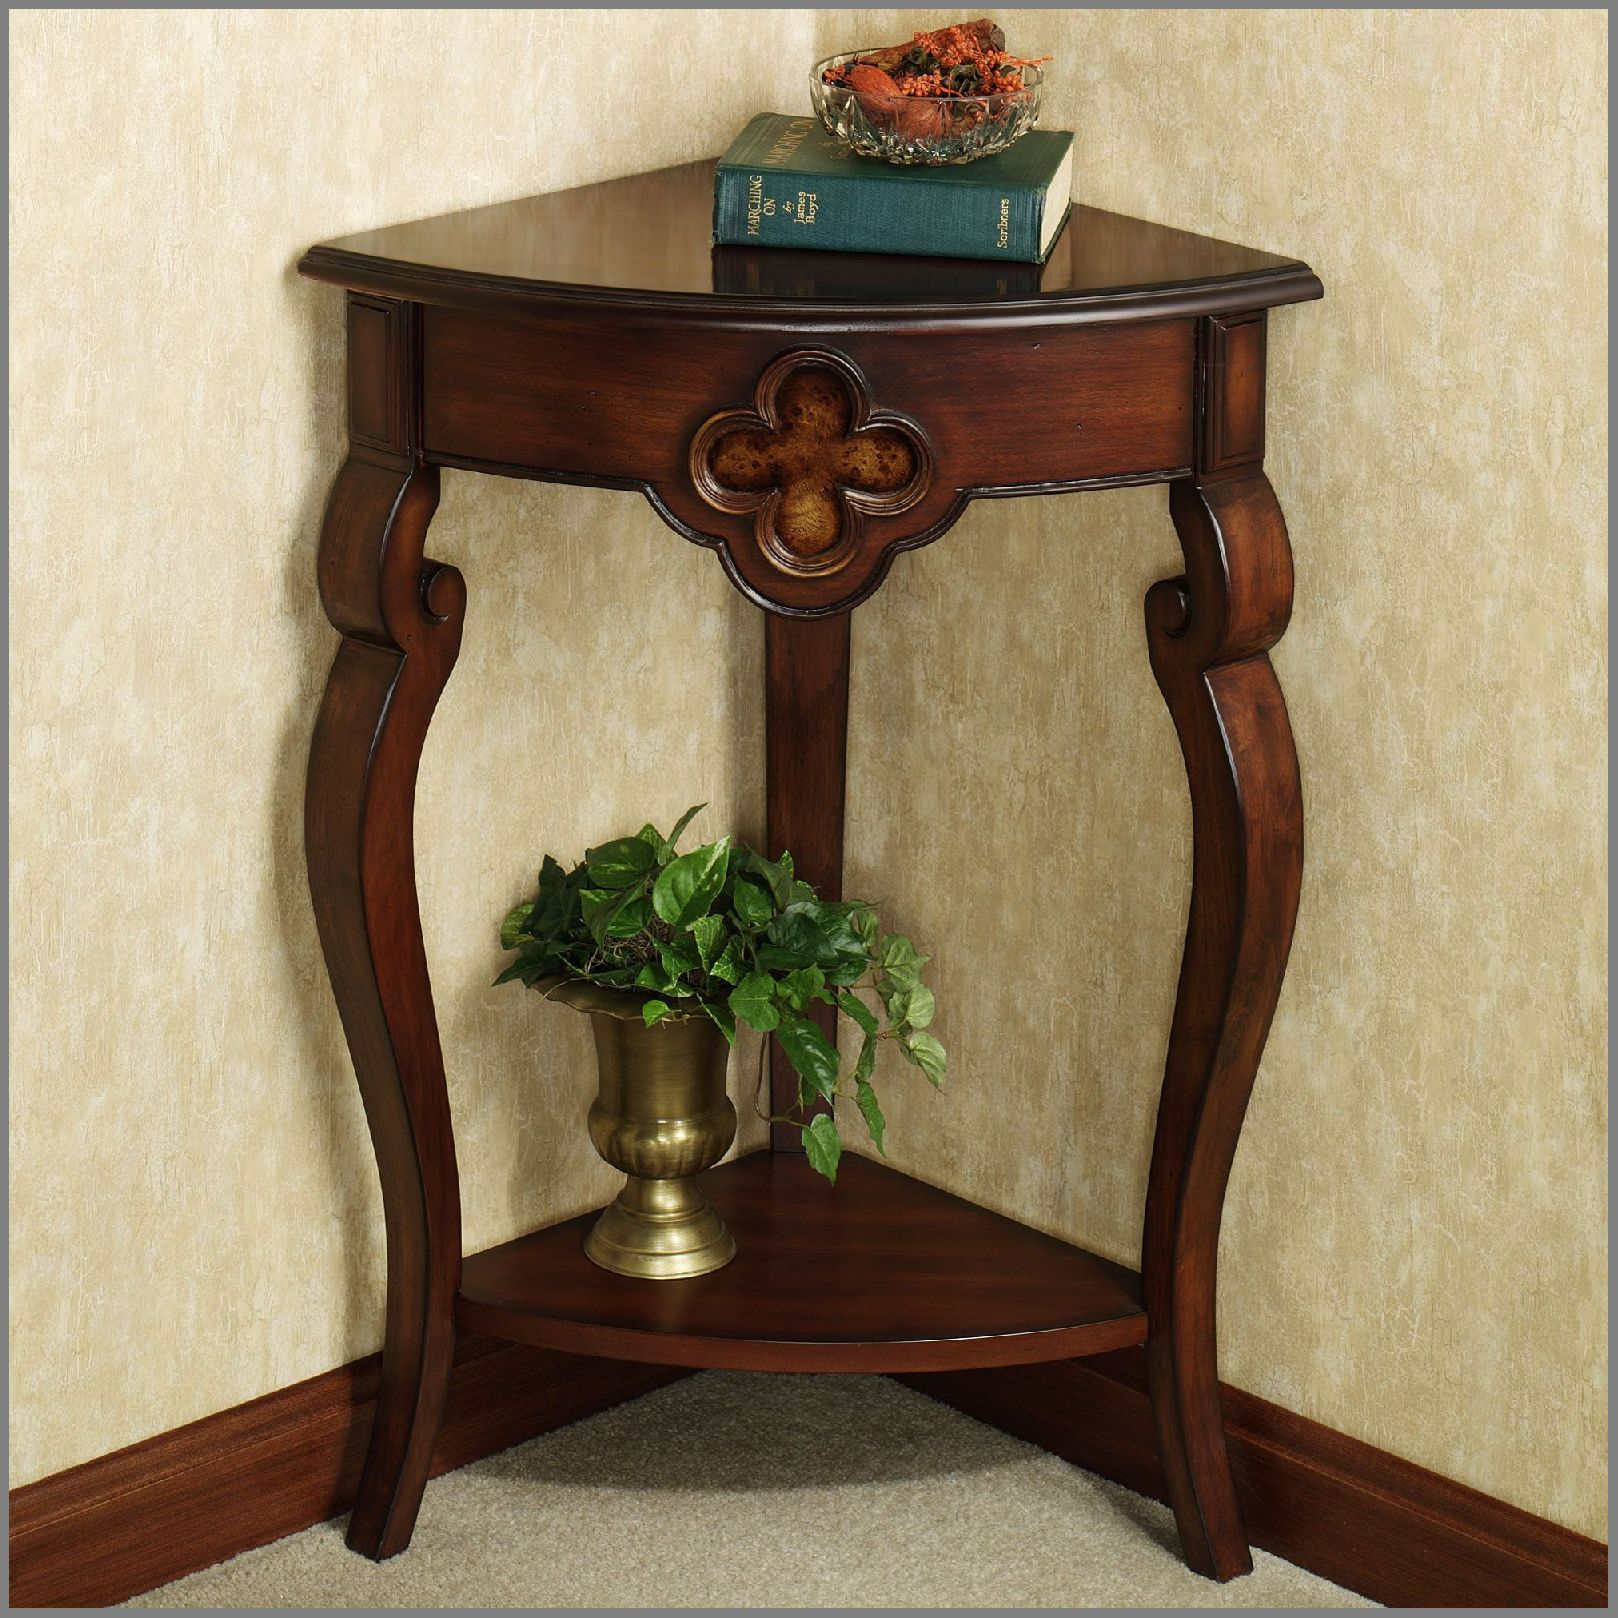 hallway corner accent table home decor ideas pine end with drawer small white half moon outdoor storage bench side wheels living room threshold windham cabinet blue lamps bedroom